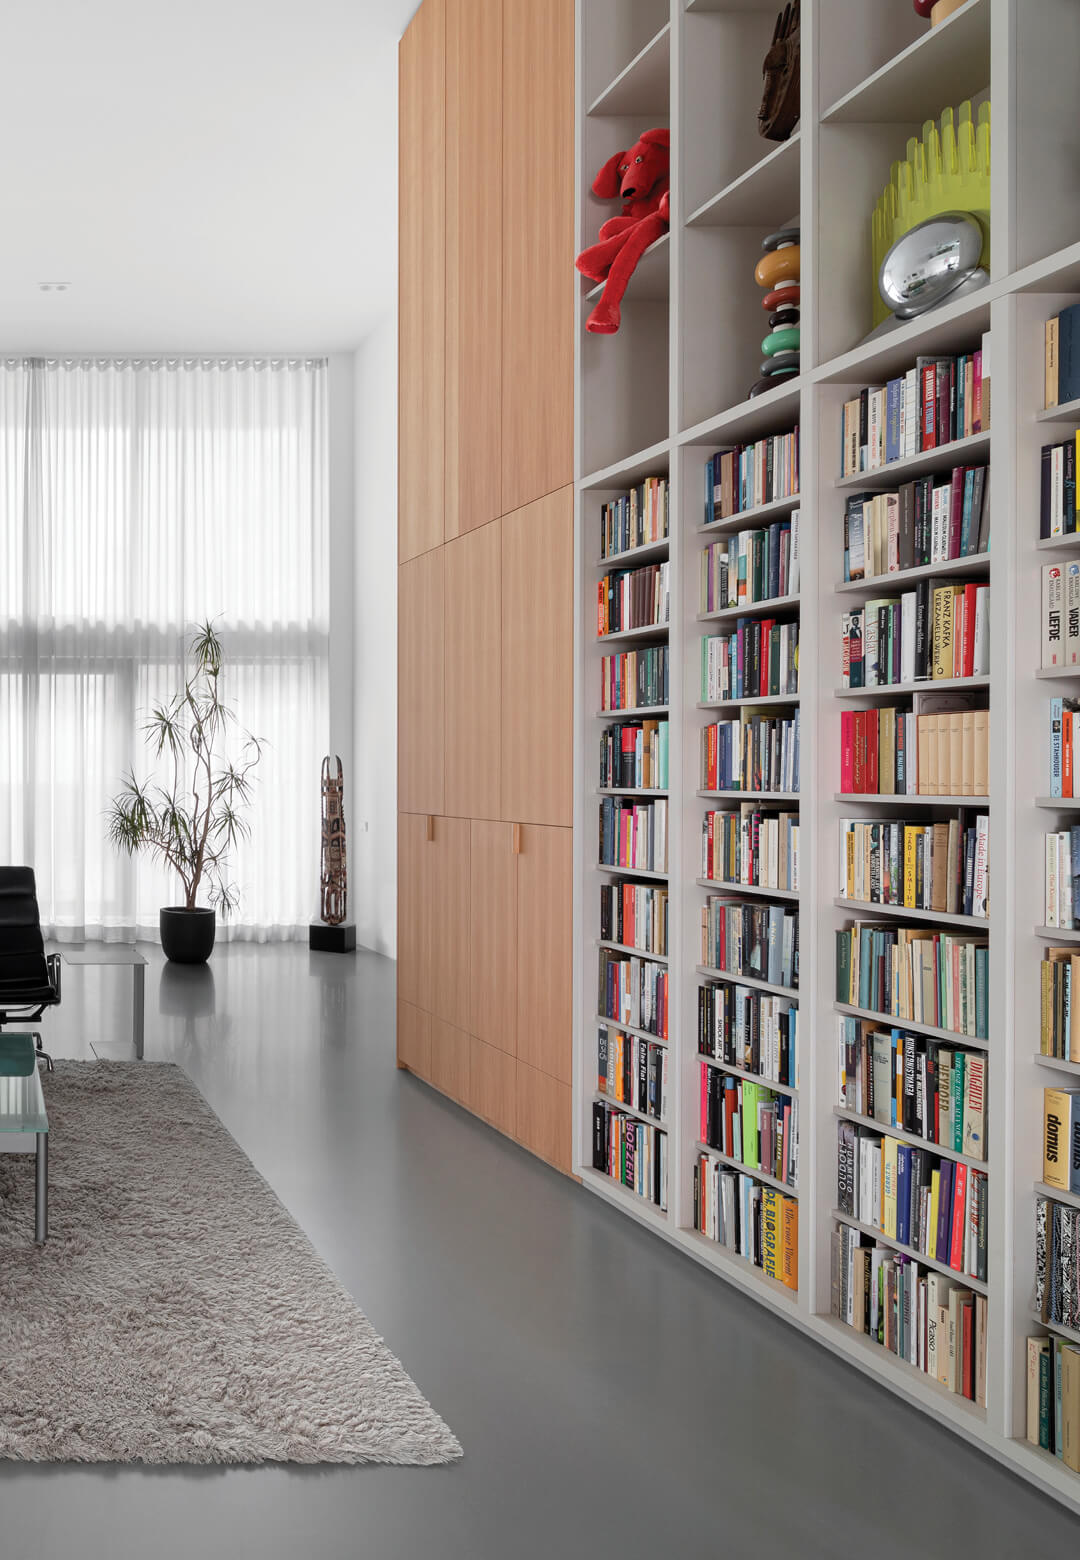 Double-height spaces, bespoke high cabinets, glass vitrines, and designer furniture characterise 'Home for the Arts' by i29 architects | Home for the Arts by i29 Interior Architects | STIRworld